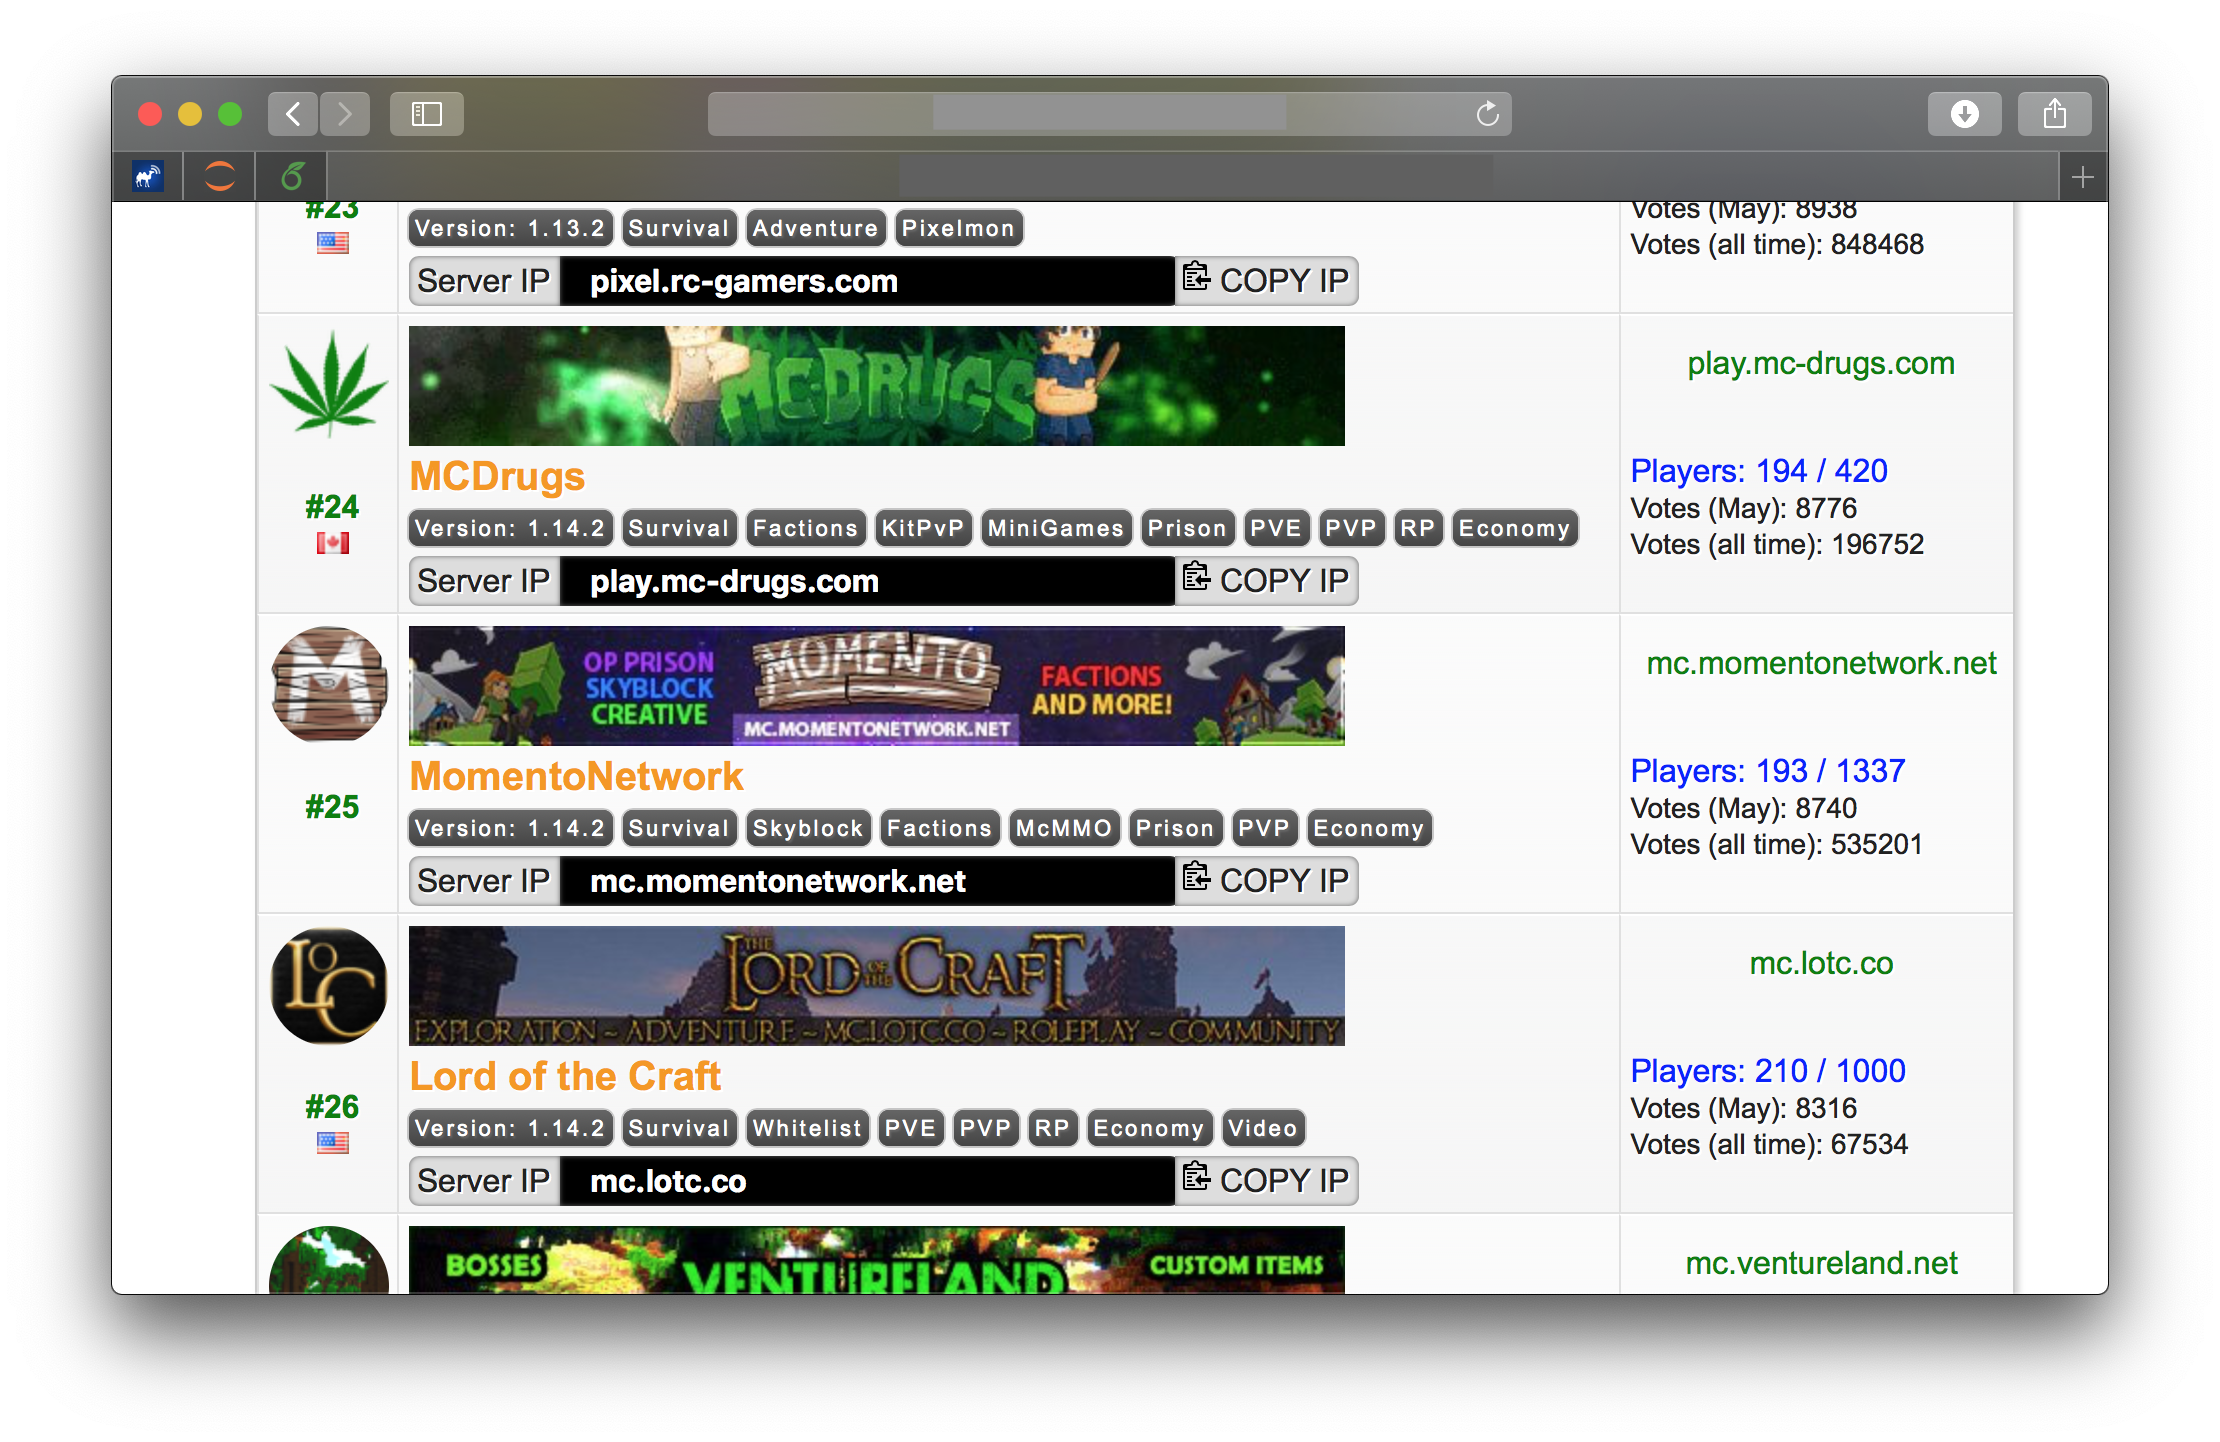 An example of a Minecraft Top Server that is not very readable